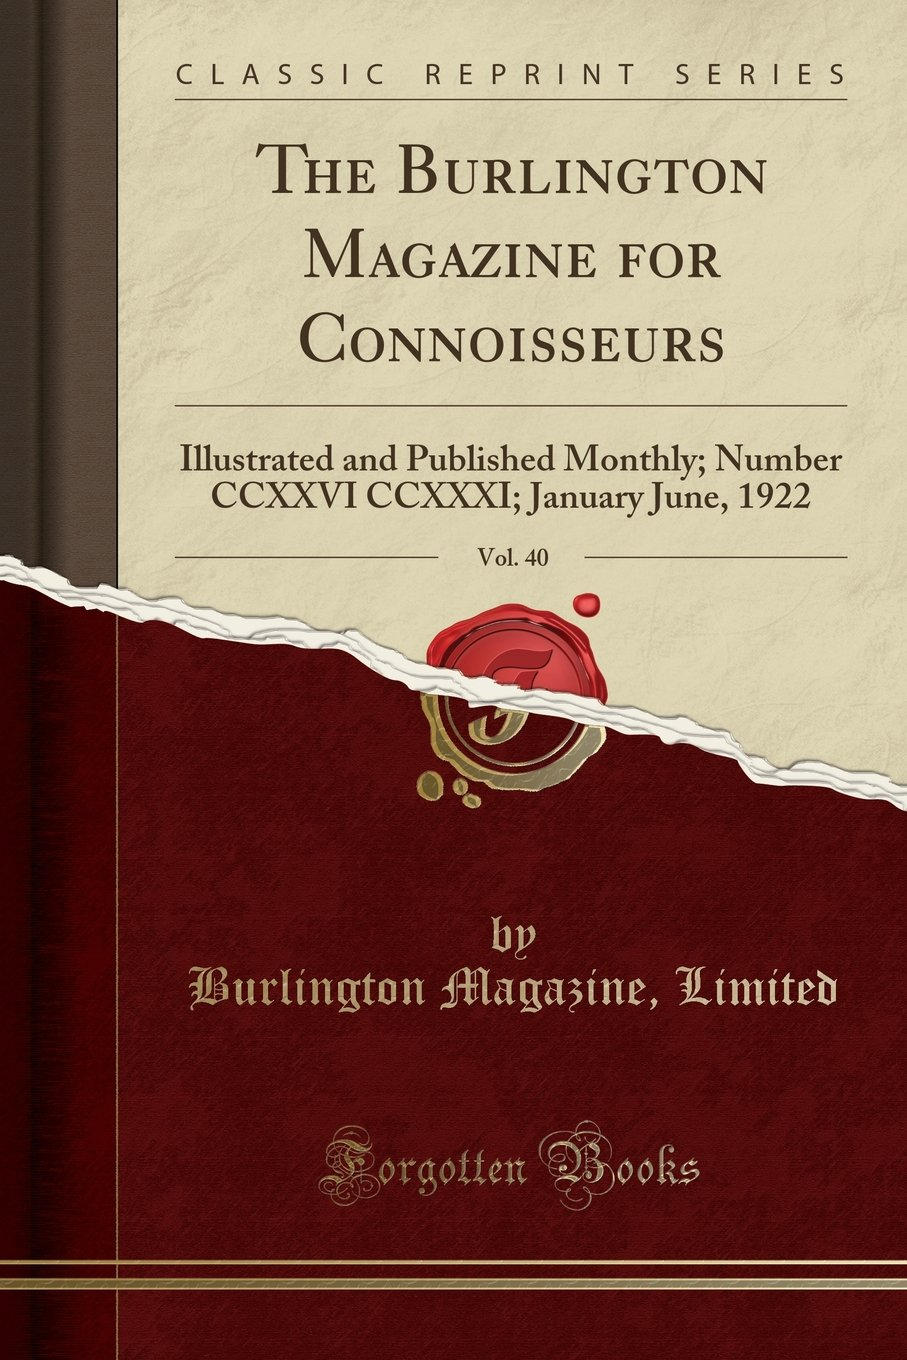 The Burlington Magazine for Connoisseurs, Vol. 40: Illustrated and Published Monthly; Number CCXXVI CCXXXI; January June, 1922 (Classic Reprint) pdf epub